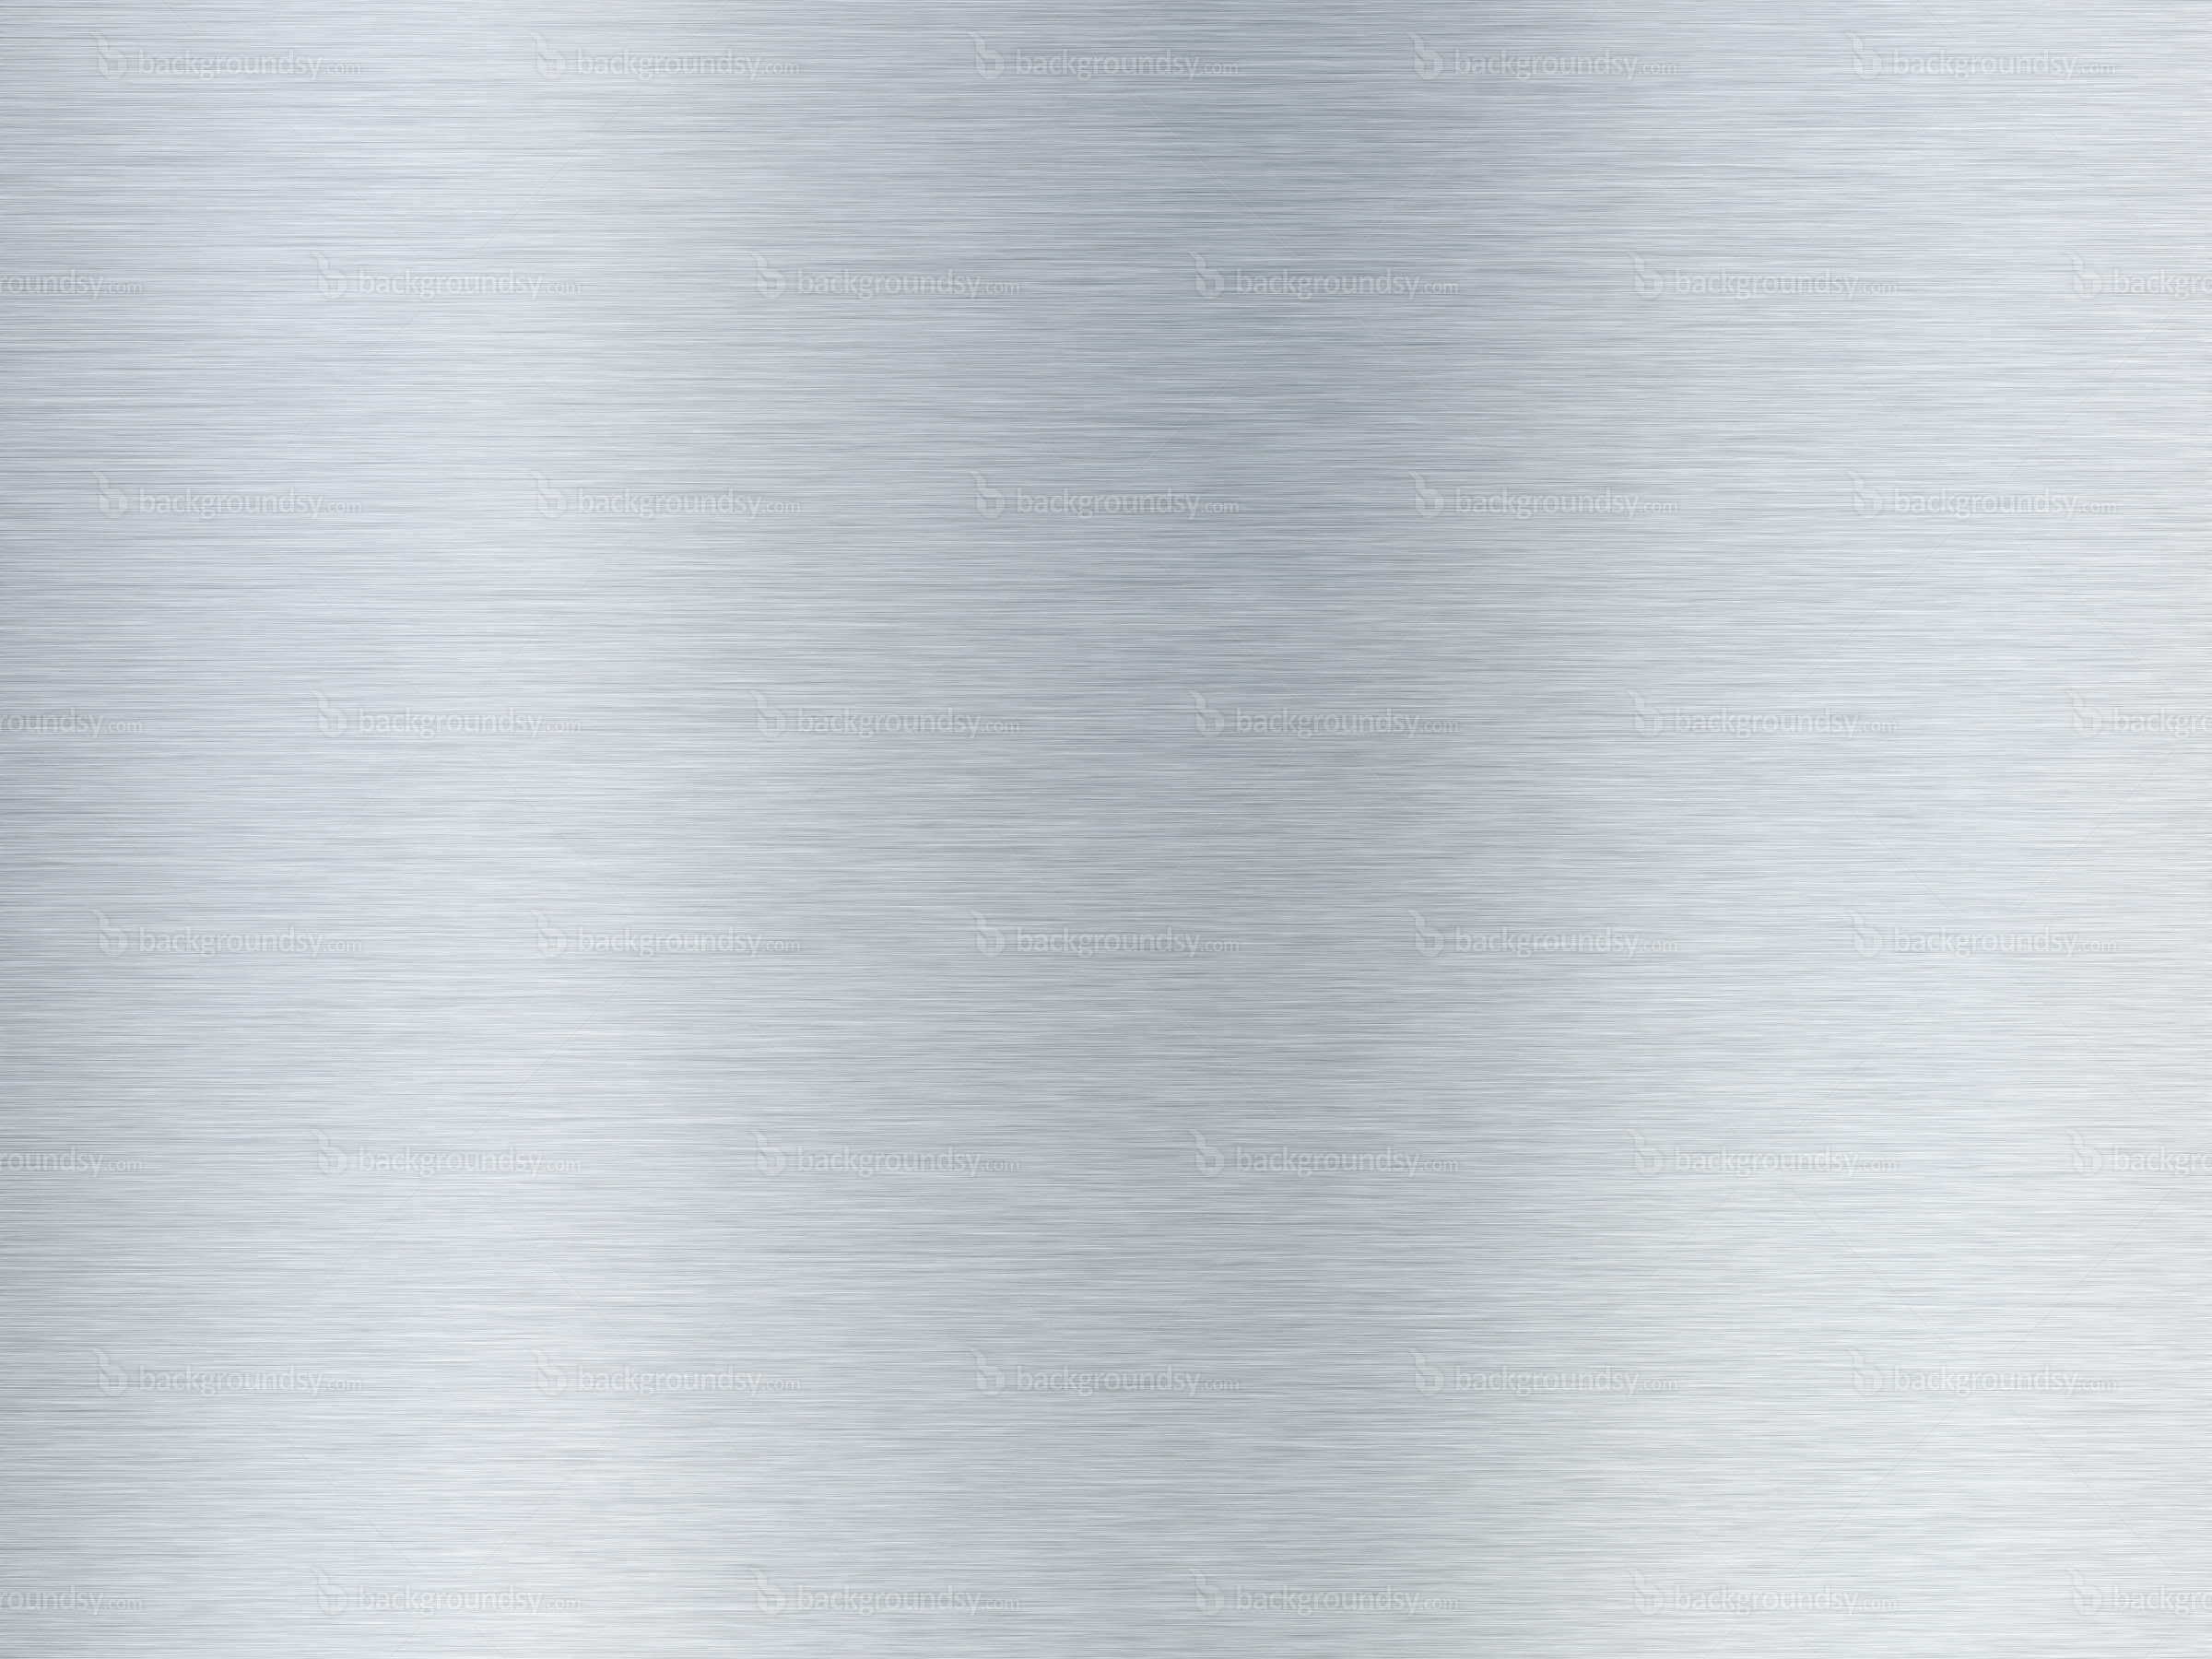 Silver metal texture | Backgroundsy.com